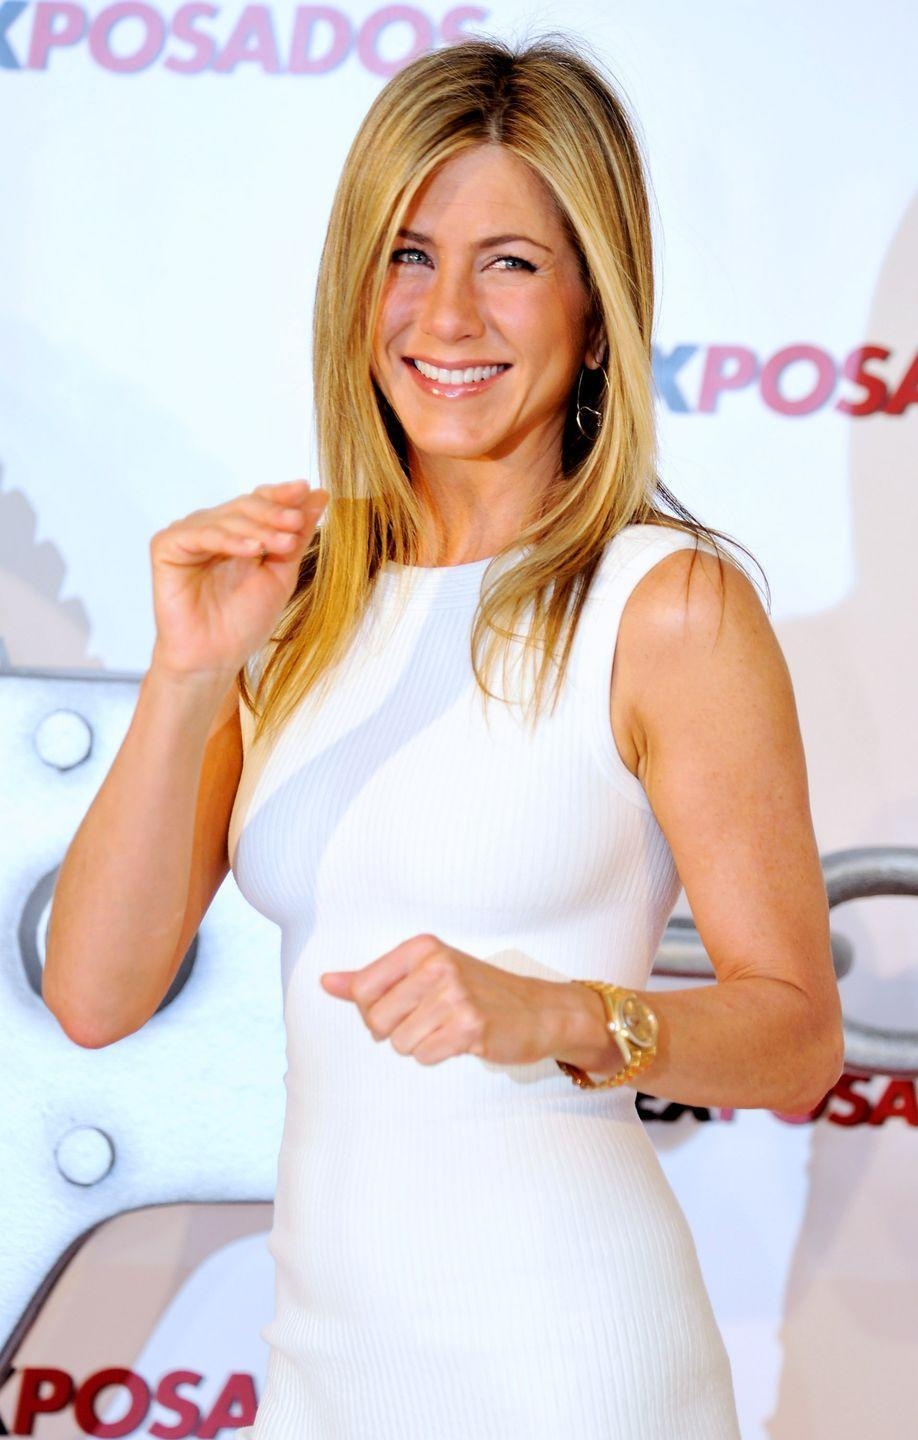 """<p>Jen can really rock a sleeveless dress. Maybe that's because of her toned arms, which comes from <a href=""""https://people.com/food/how-to-get-jennifer-anistons-amazingly-toned-arms/"""" rel=""""nofollow noopener"""" target=""""_blank"""" data-ylk=""""slk:varying her workouts"""" class=""""link rapid-noclick-resp"""">varying her workouts</a> that include boxing and yoga. If you want to work on your arms, try some of these <a href=""""https://www.womenshealthmag.com/fitness/g28615817/bicep-and-triceps-workout/"""" rel=""""nofollow noopener"""" target=""""_blank"""" data-ylk=""""slk:17 bicep and tricep workouts"""" class=""""link rapid-noclick-resp"""">17 bicep and tricep workouts</a>. </p>"""